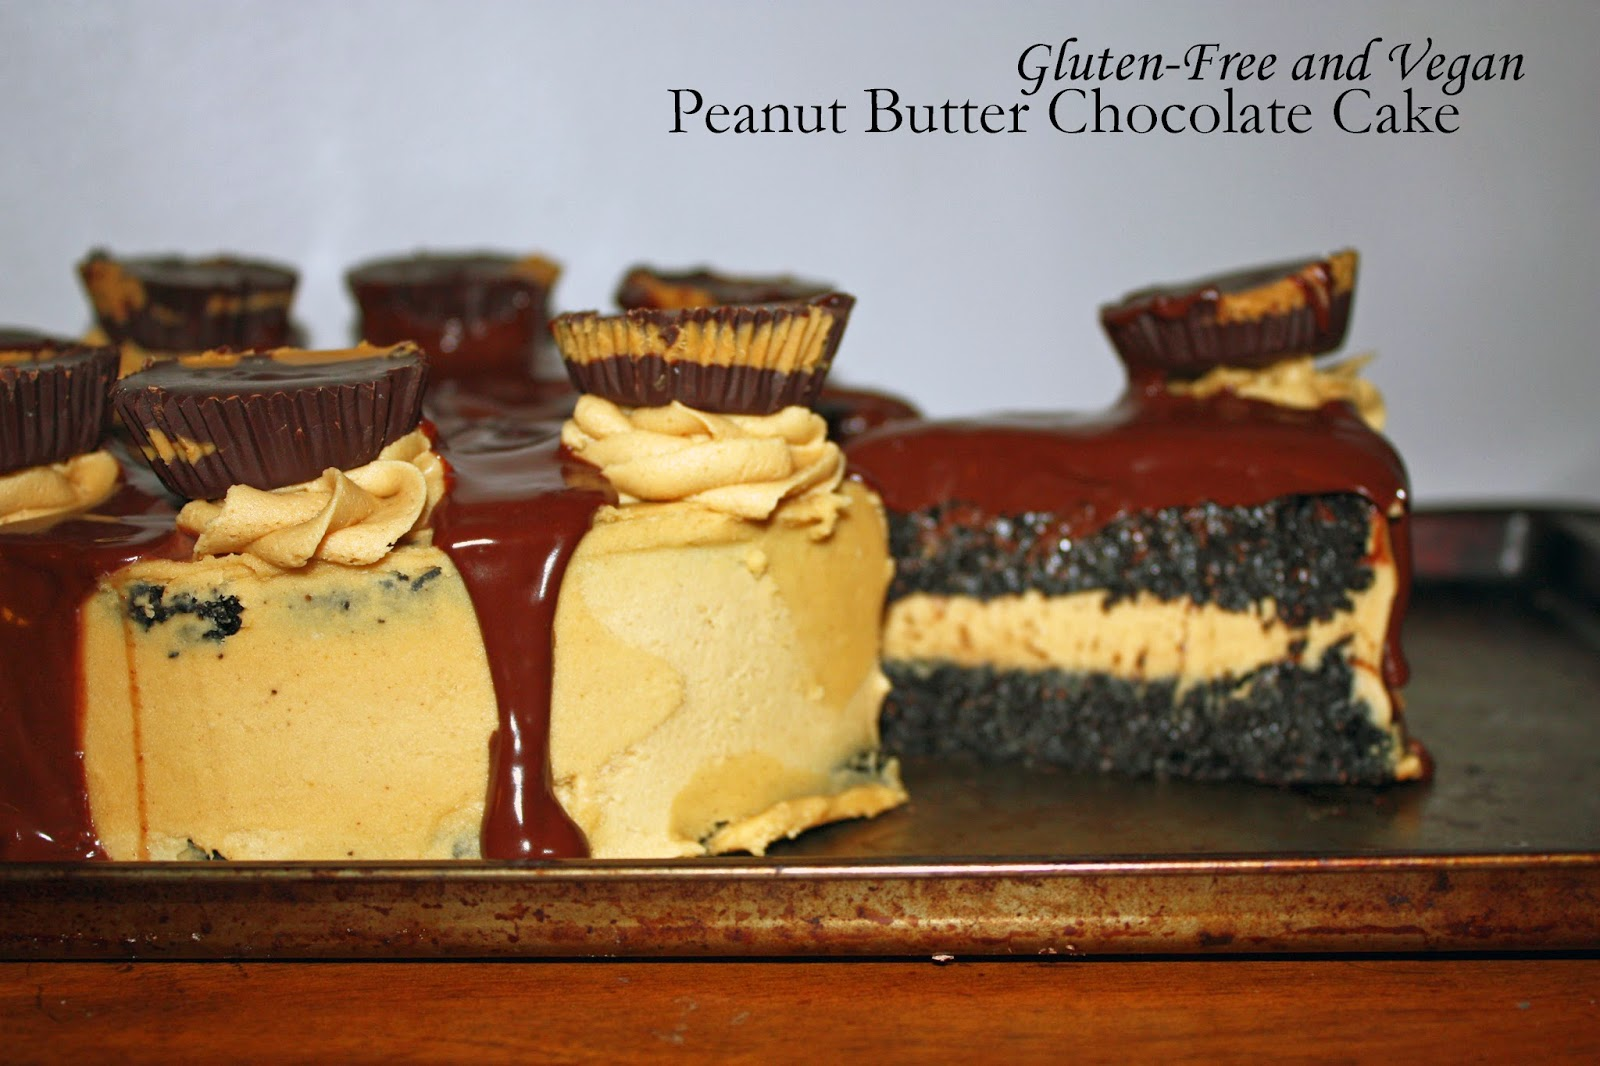 gluten-free and vegan peanut butter chocolate cake